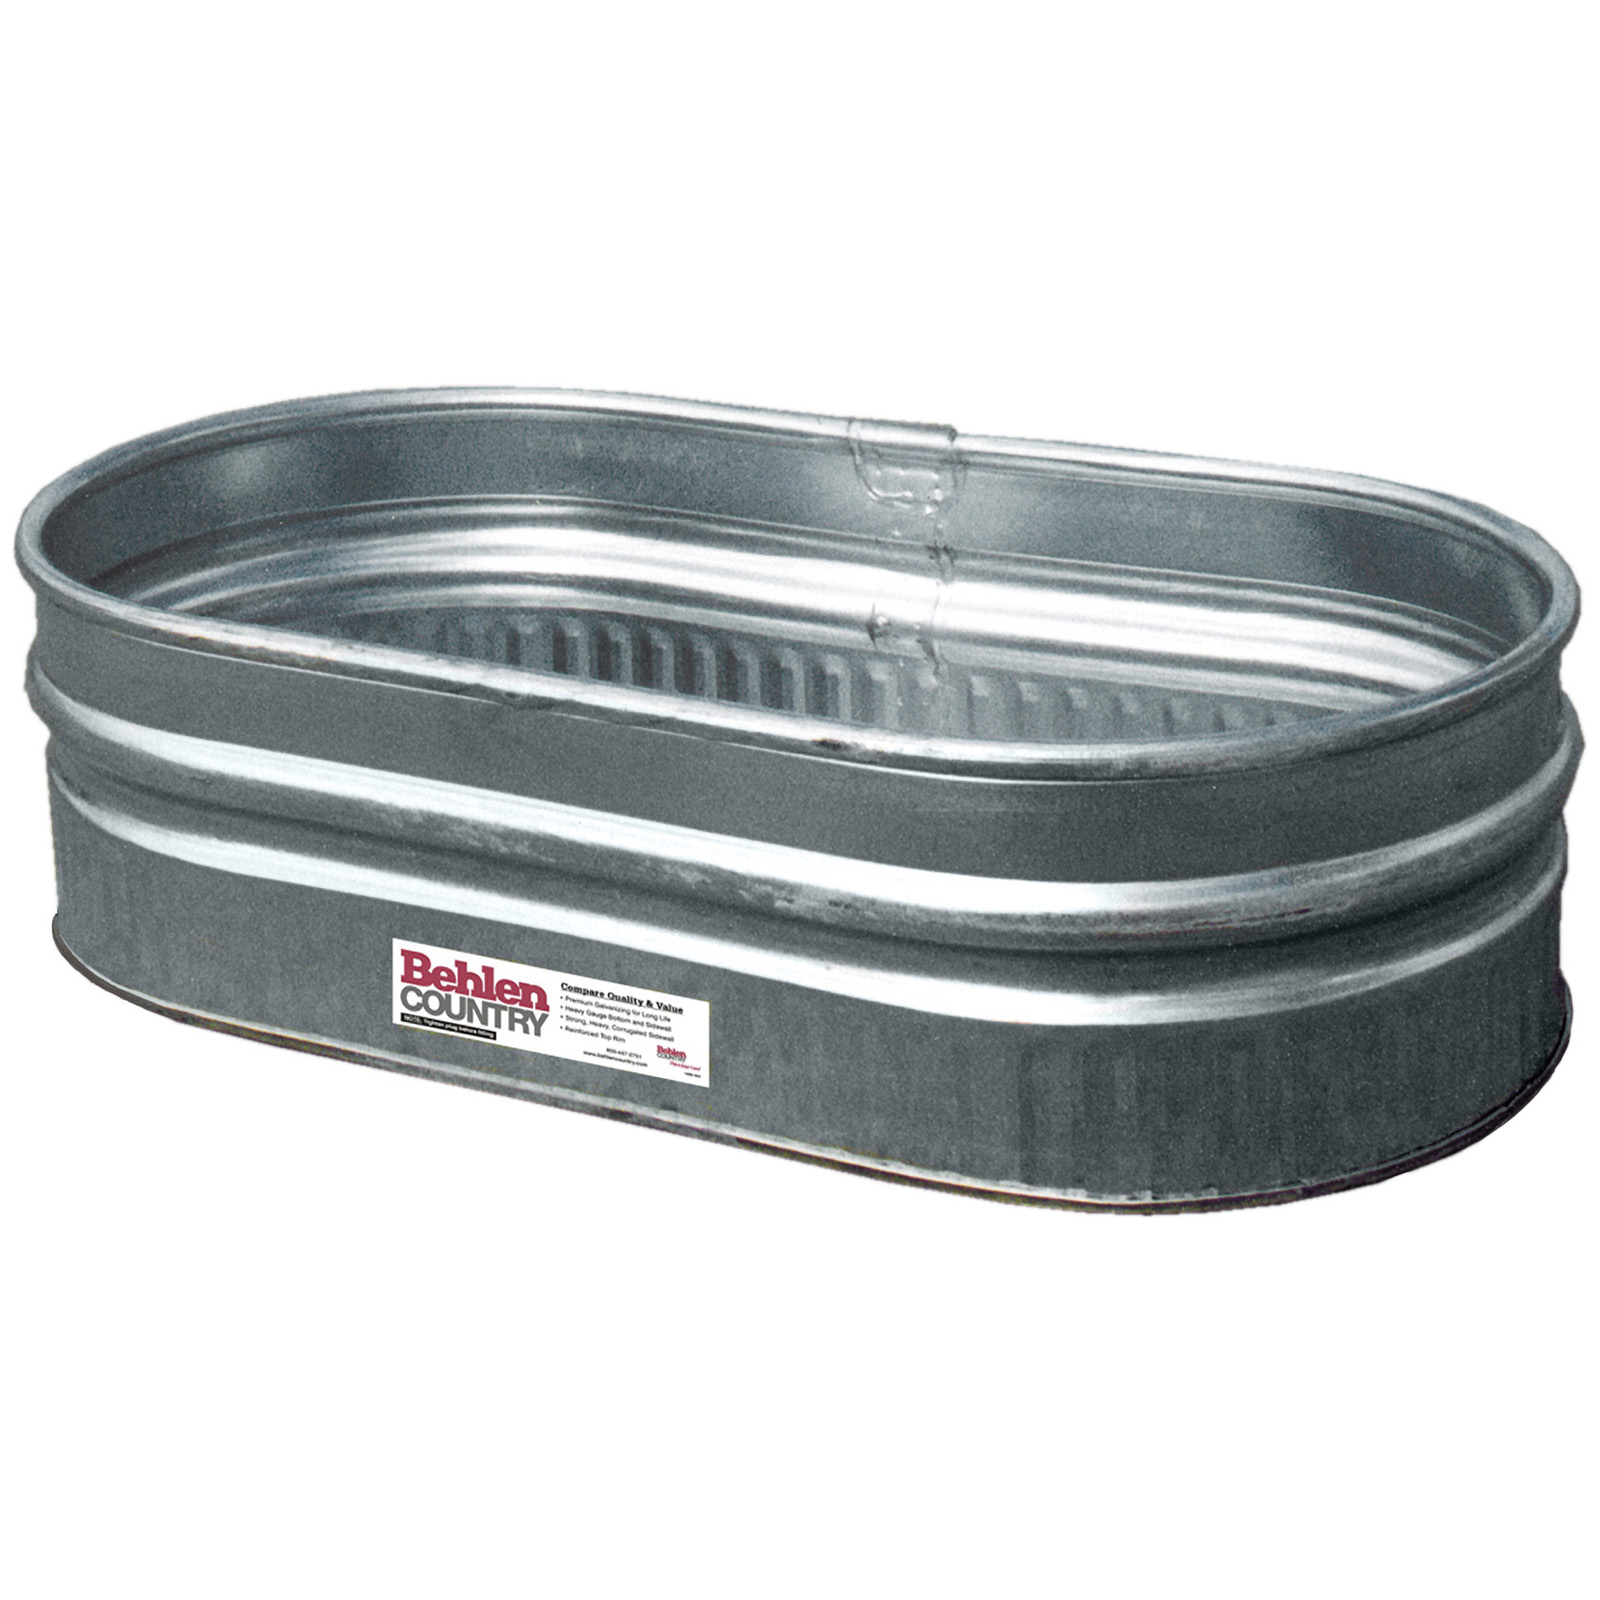 Galvanized Round End Stock Tanks Product Categories Behlen Country